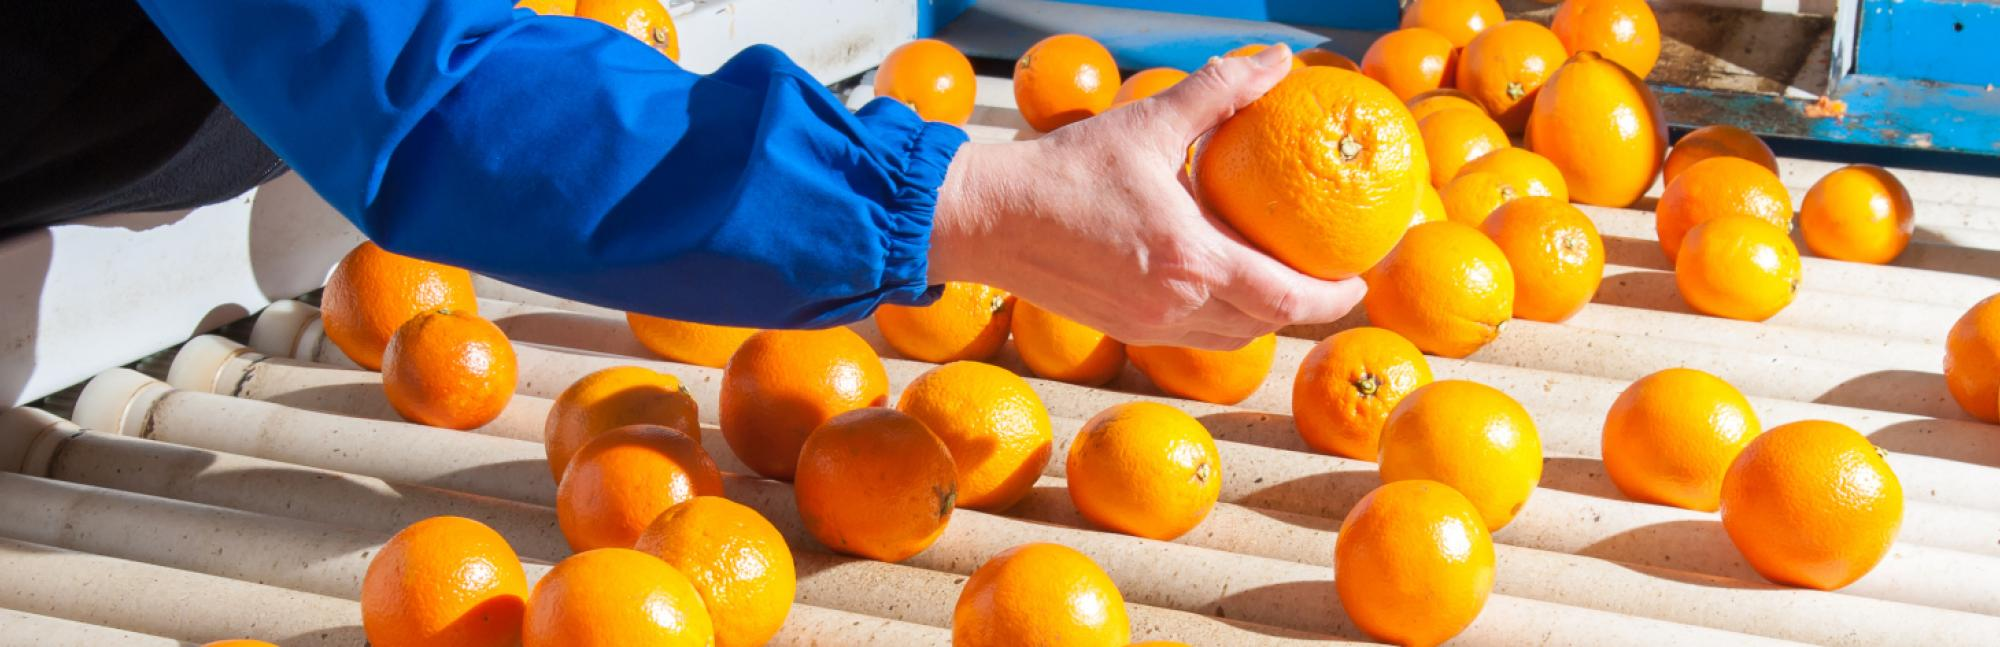 Hero oranges Food Waste Reduction Roadmap Progress 2020